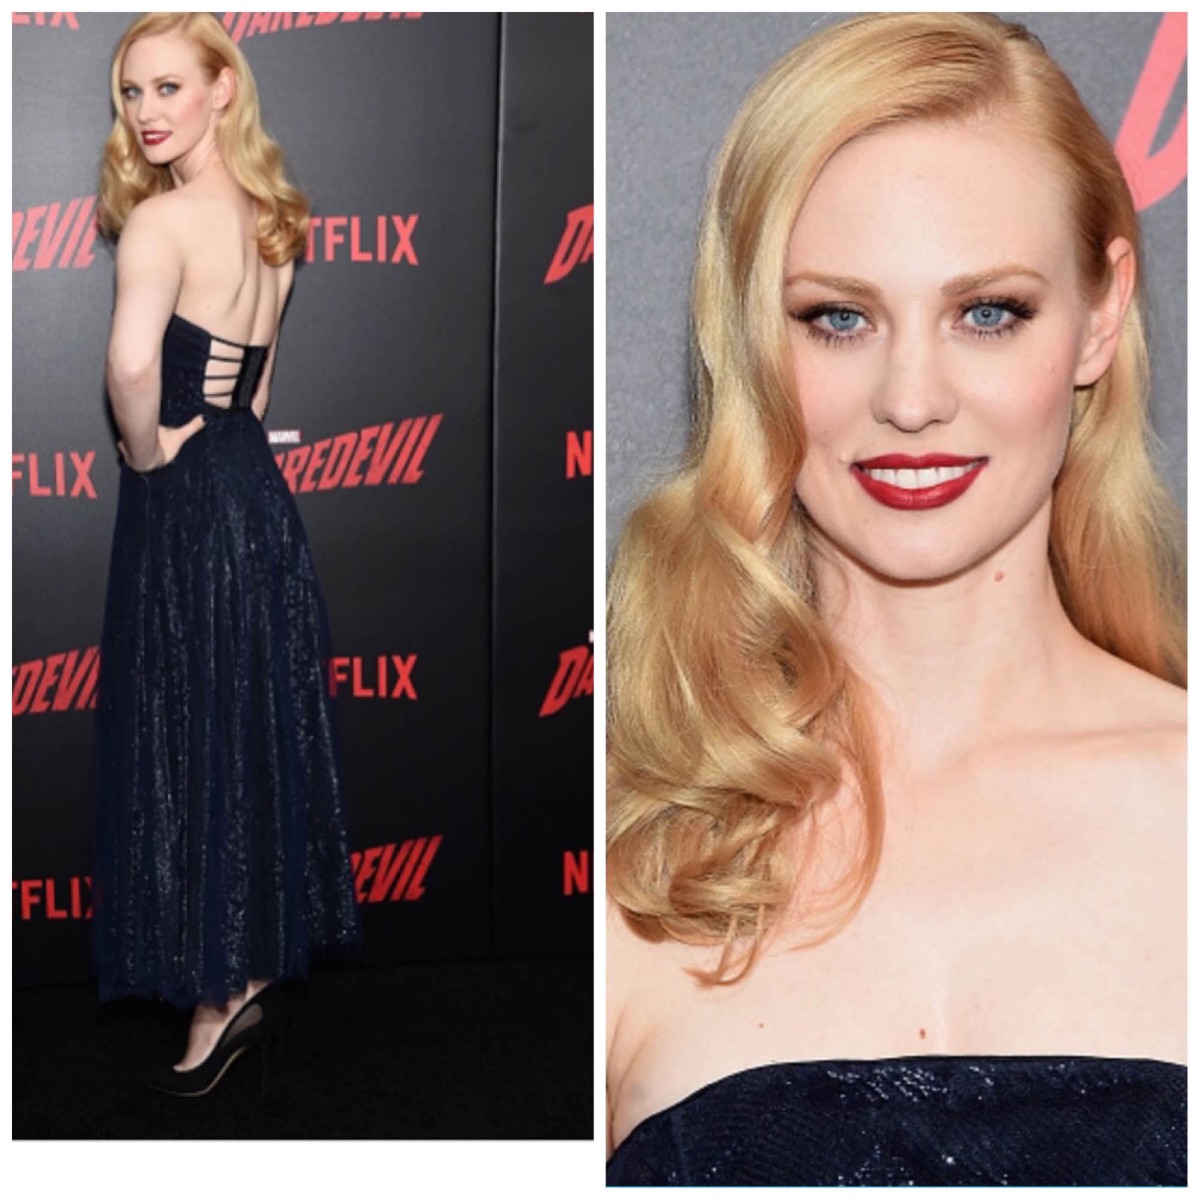 Deborah-Ann Woll's Look At The Daredevil Premiere